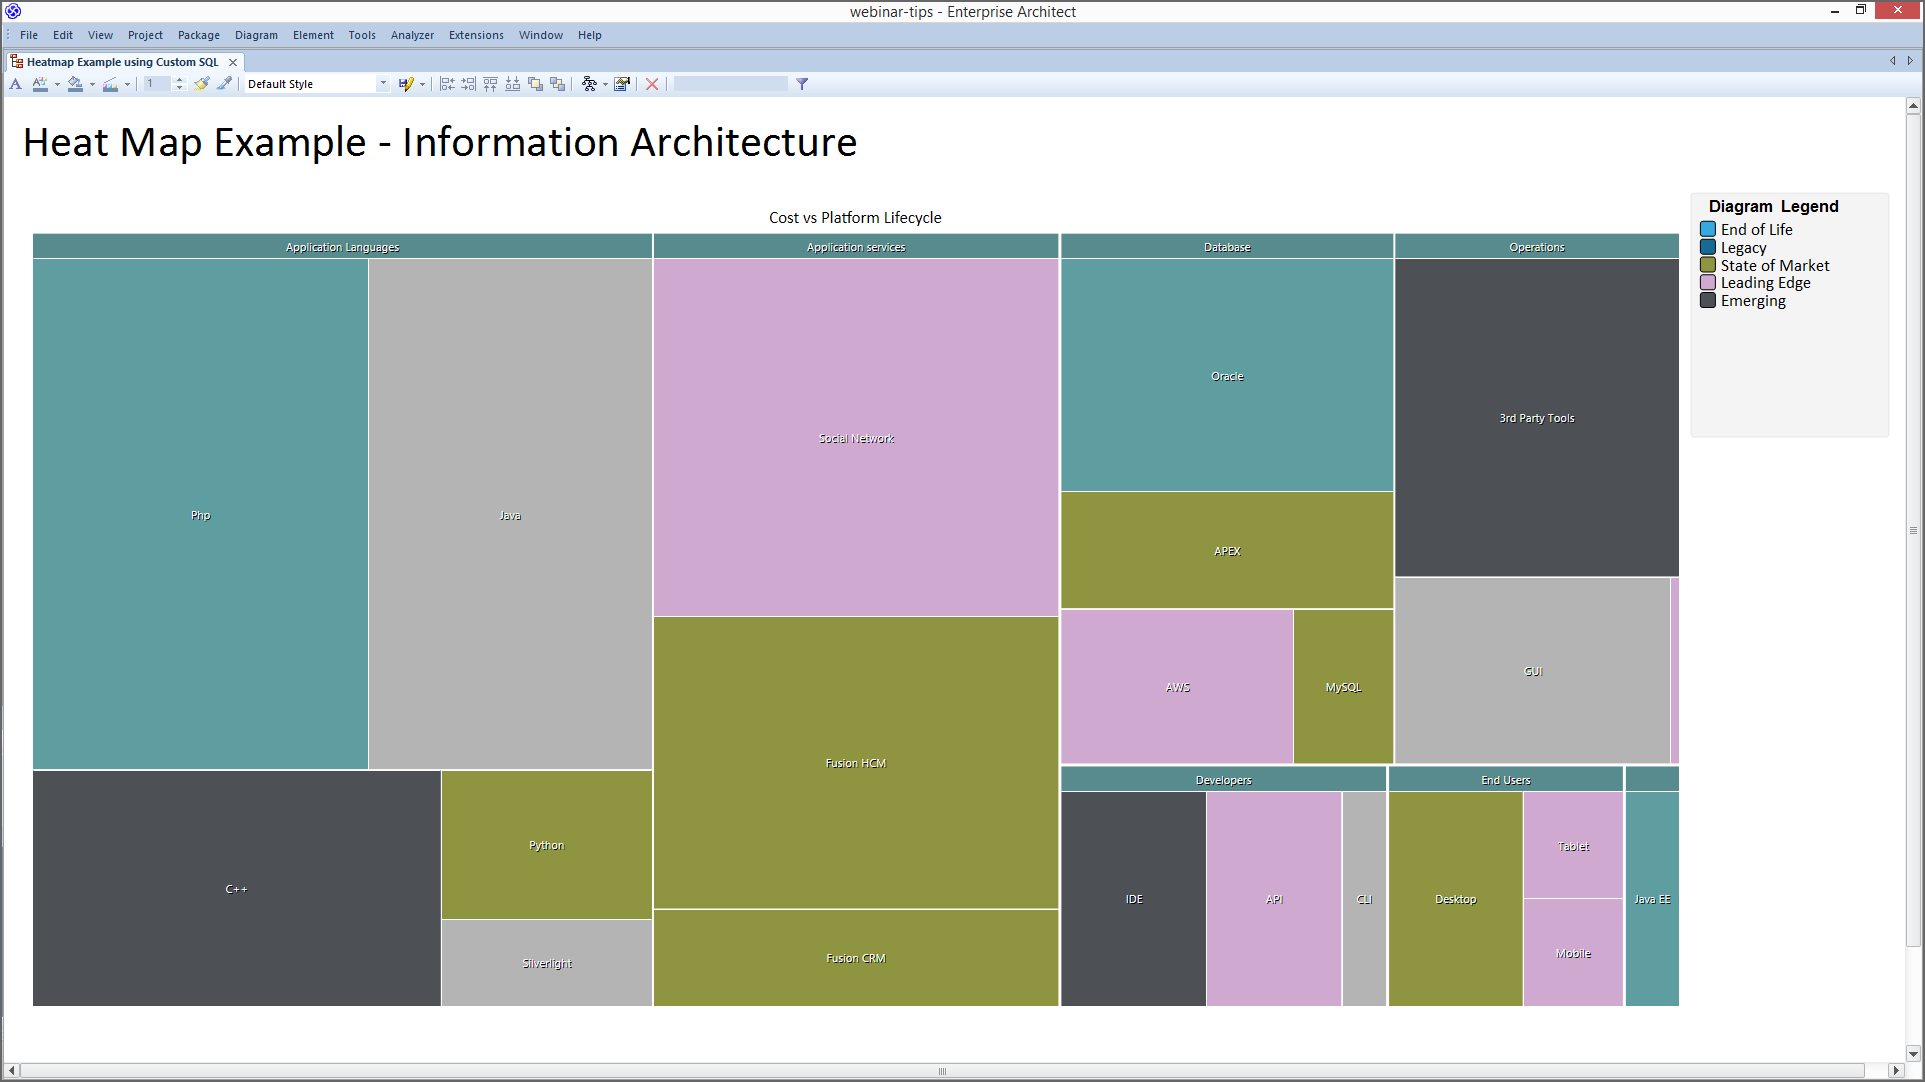 Enterprise Architect Desktop Edition: Analysis With Heatmaps